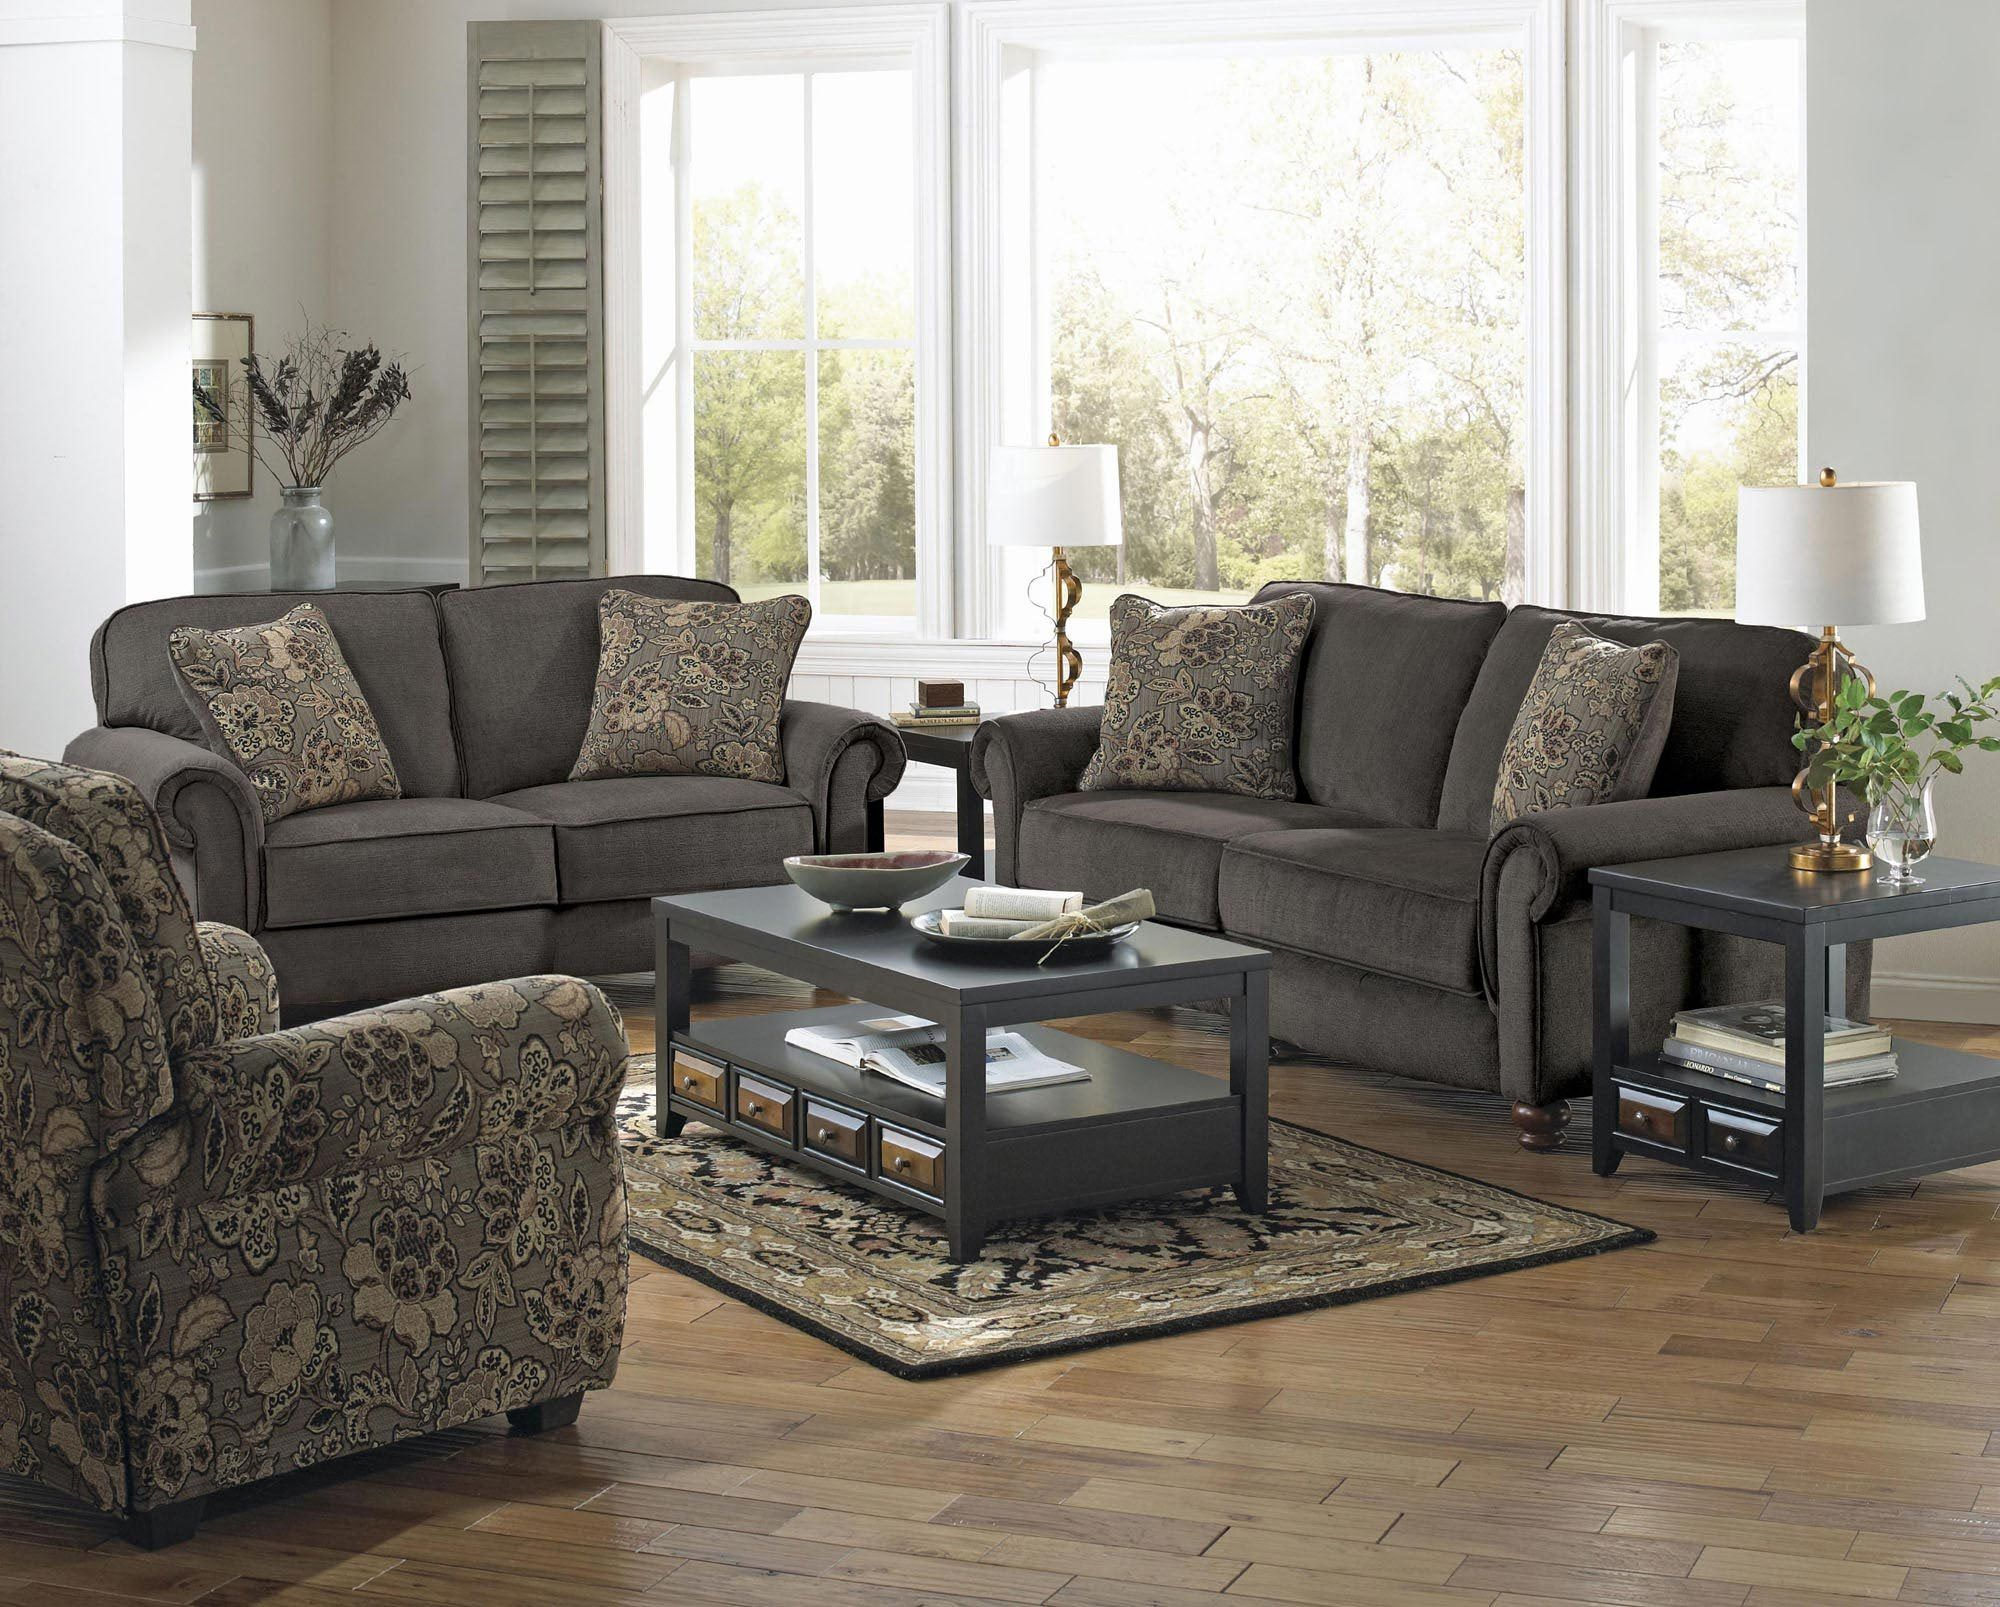 latest sofa designs for living room%0A Downing Sofa Set in Charcoal   Jackson Furniture   Home Gallery Stores